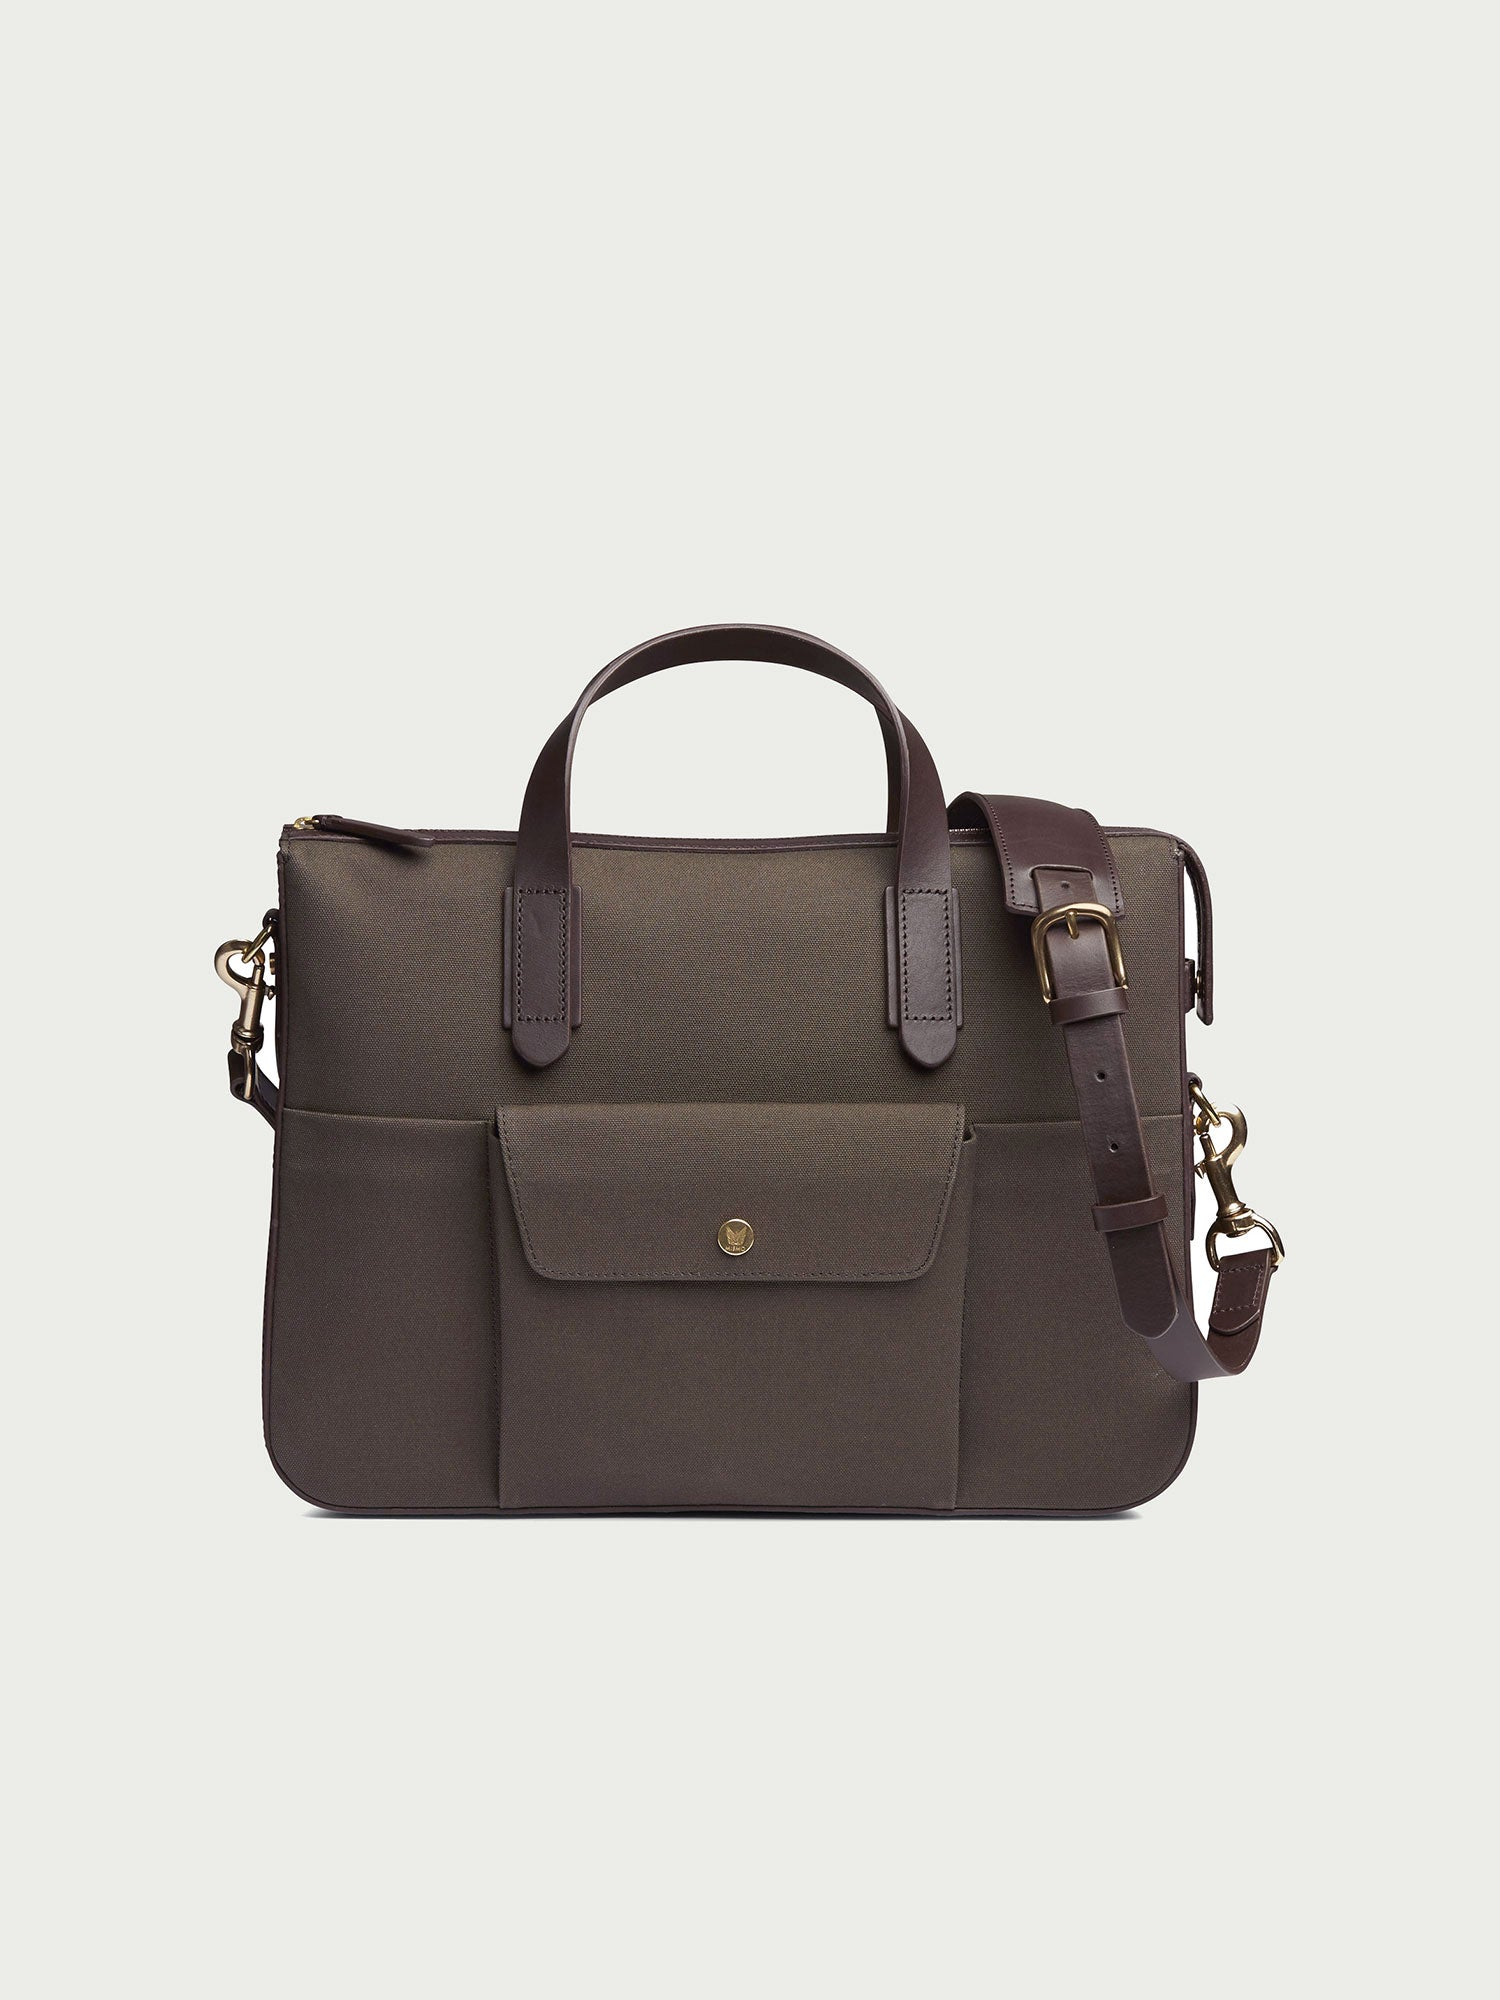 M/S Briefcase, Army/Dark Brown - Goods